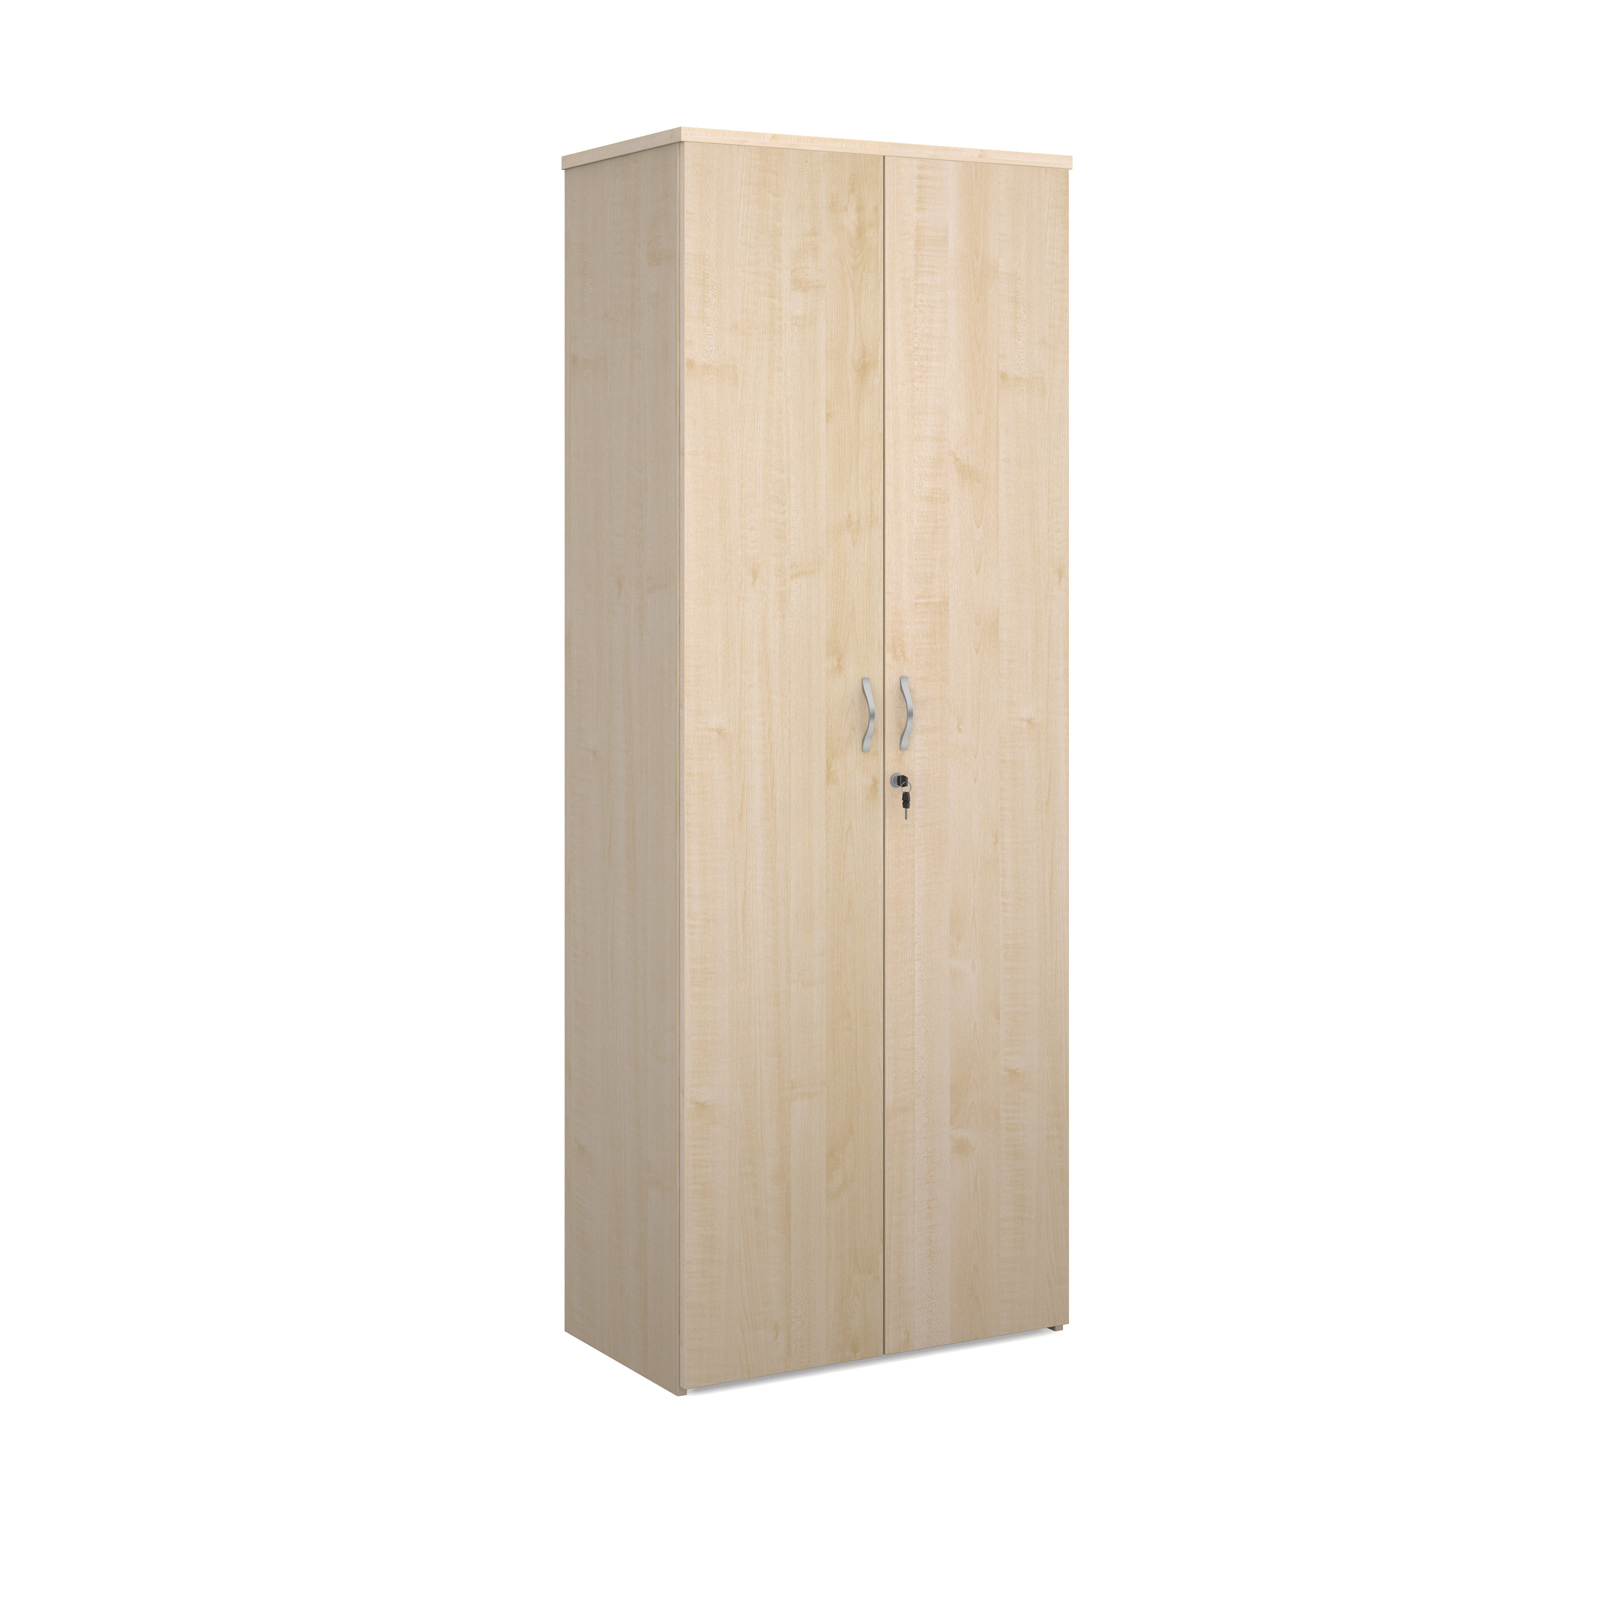 Universal double door cupboard 2140mm high with 5 shelves - maple